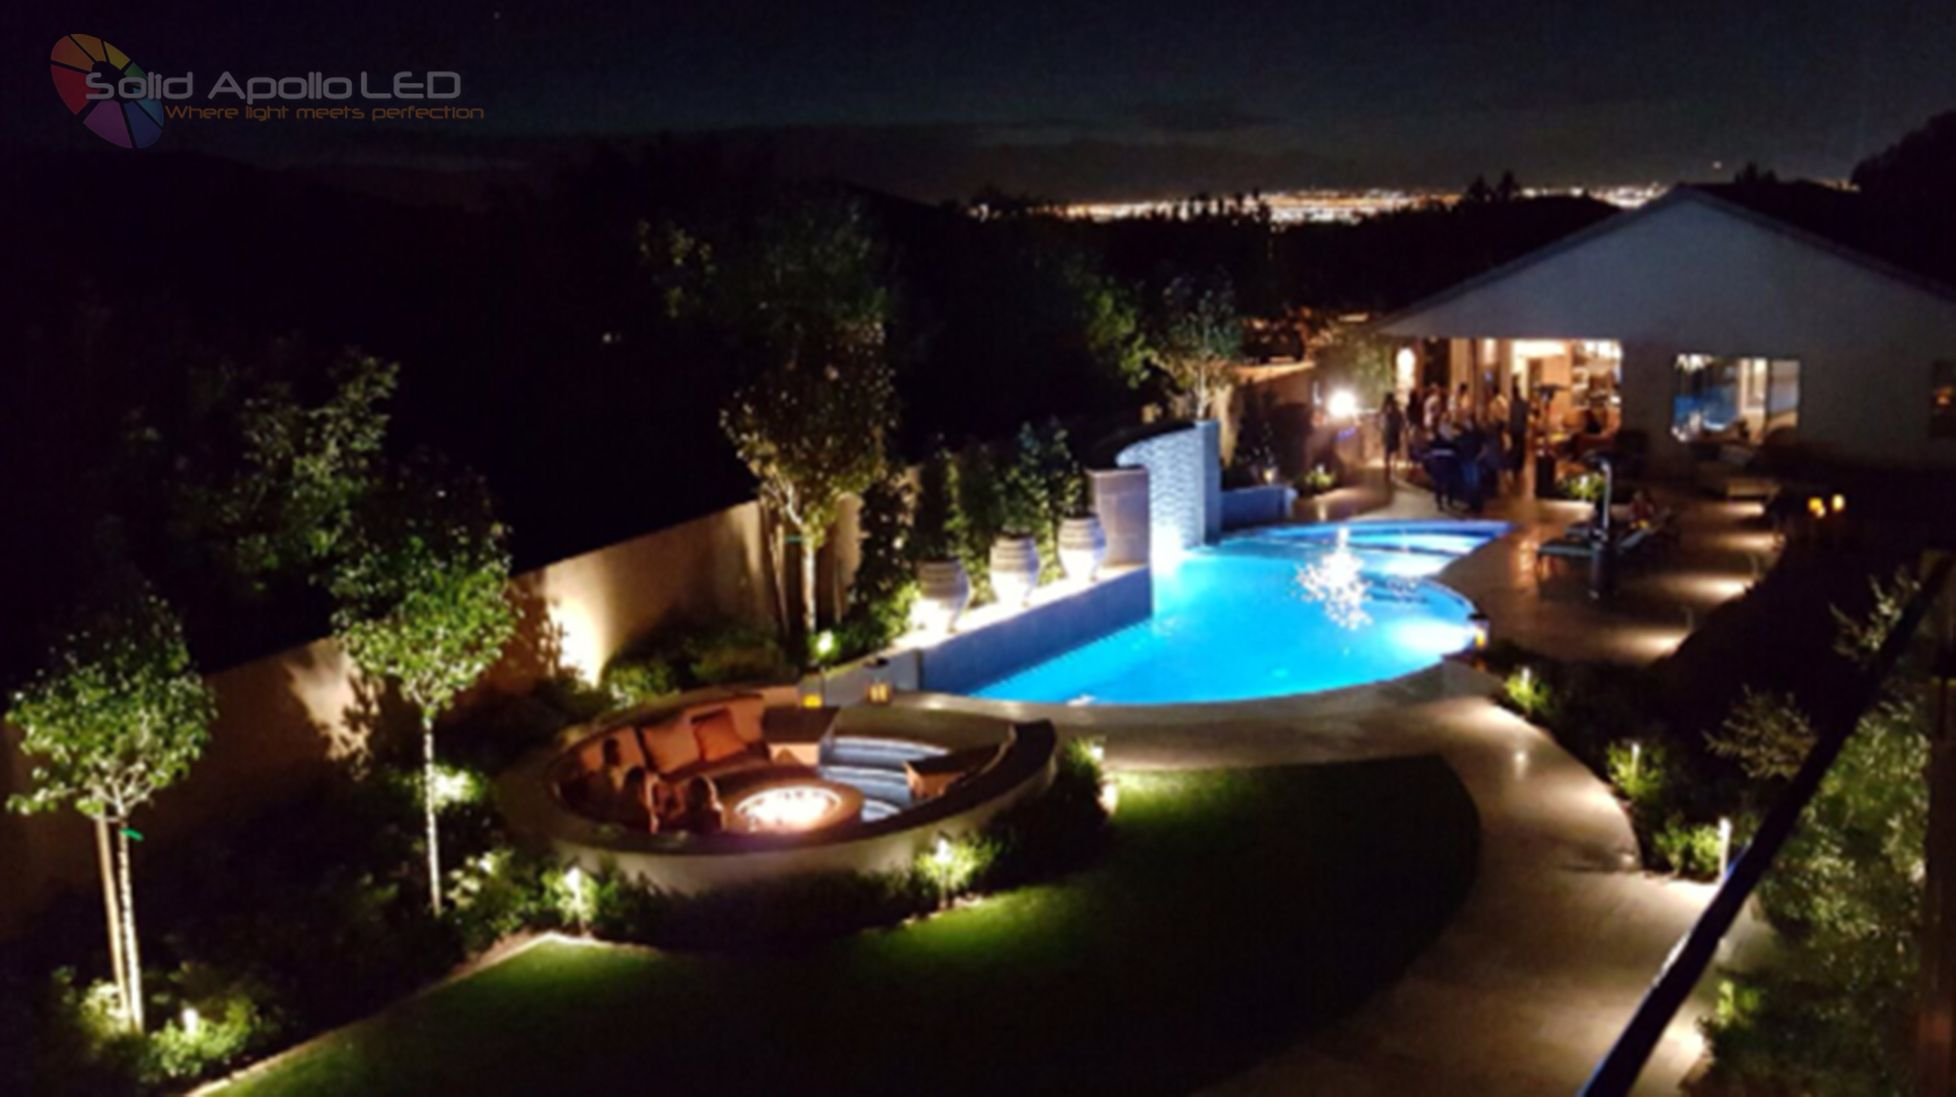 Pin By Solid Apollo Led On Outdoor Lighting Project